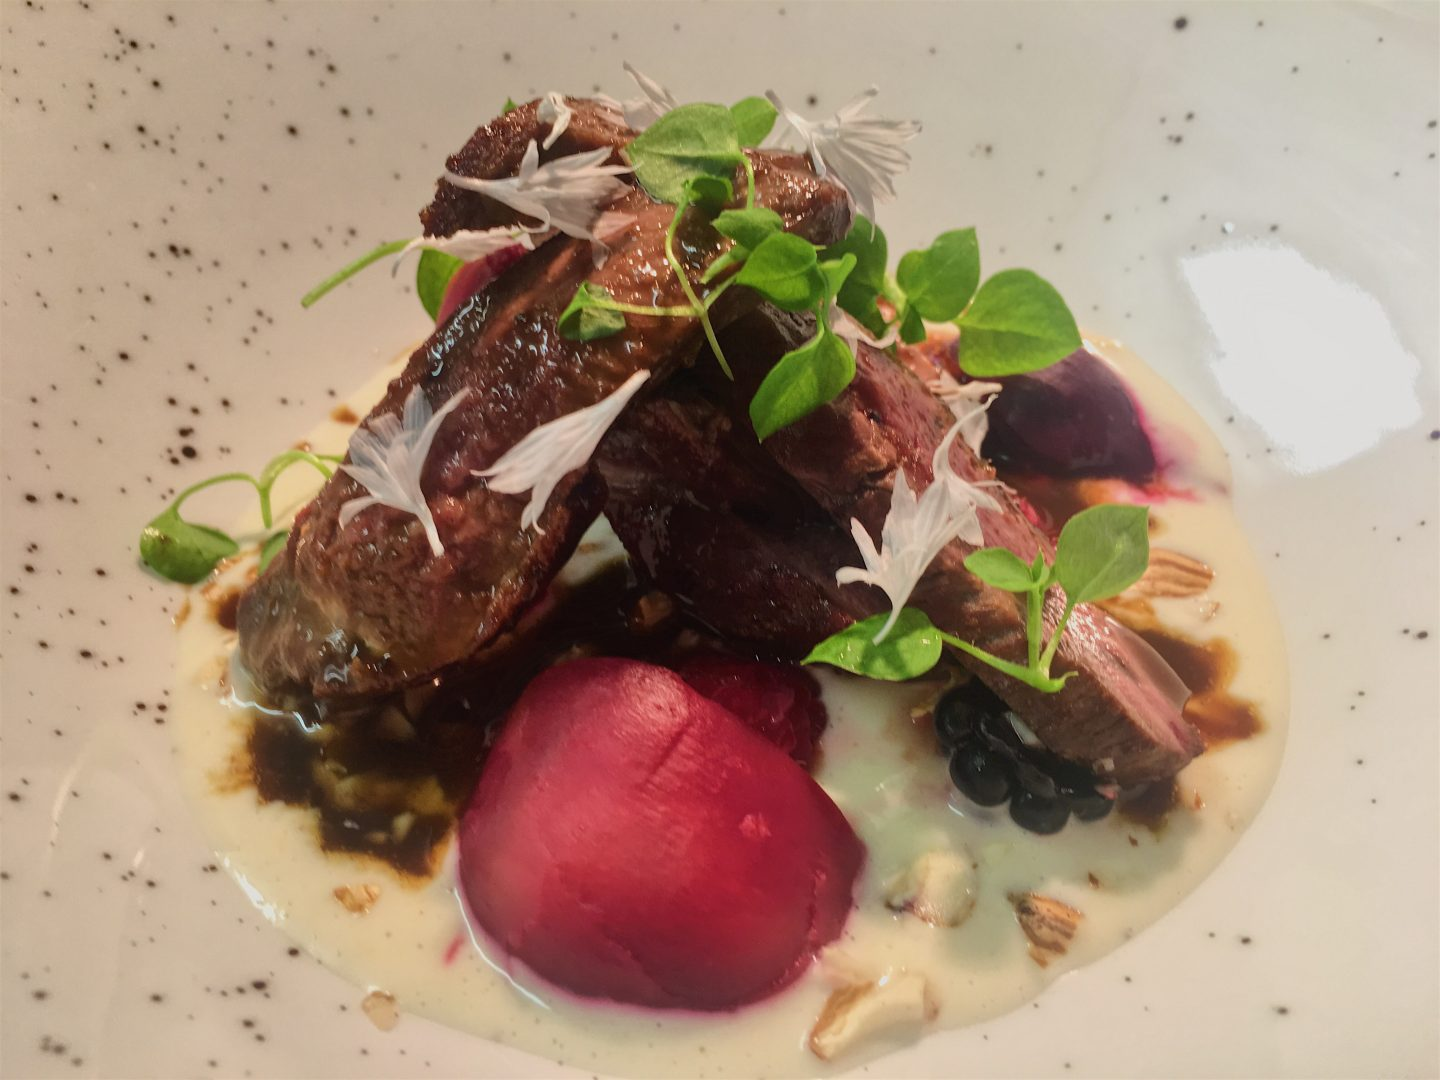 Yorkshire grouse at Native in Neal's Yard, Covent Garden